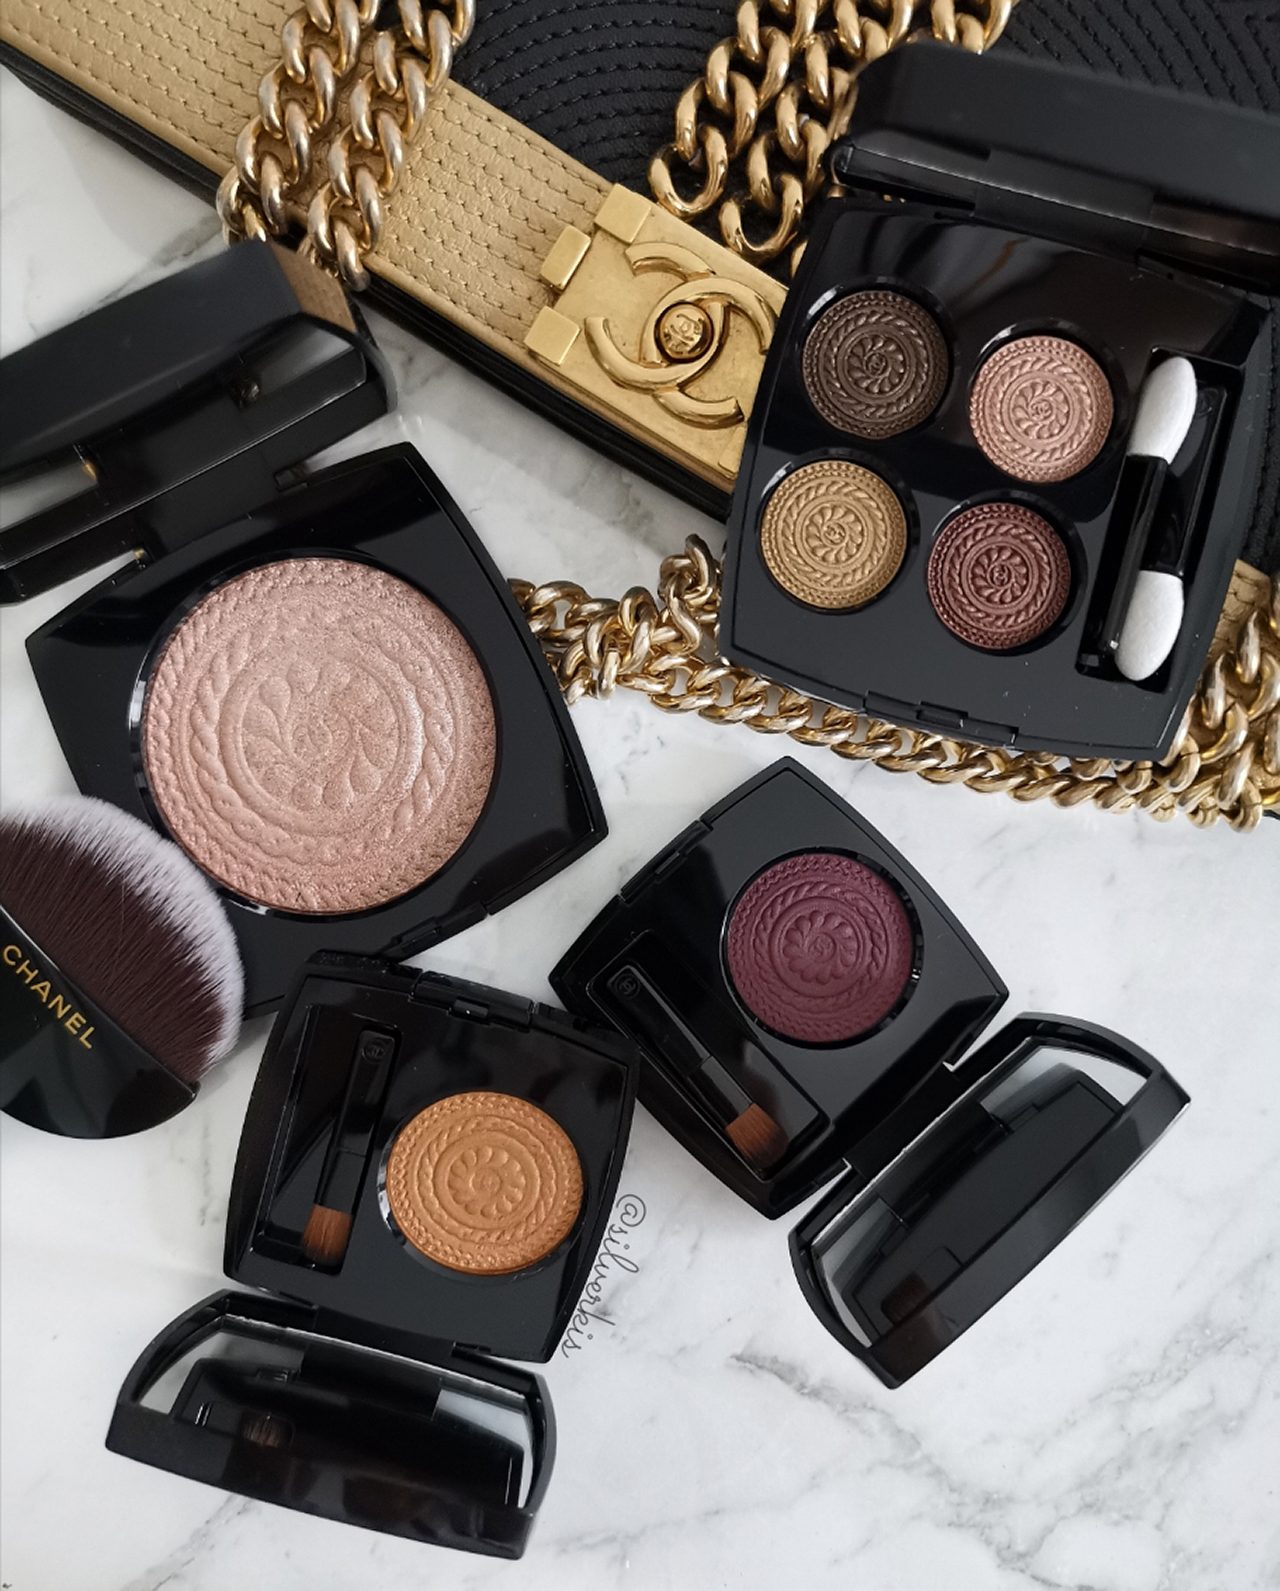 Les Ornements de Chanel Holiday 2019 eyeshadows